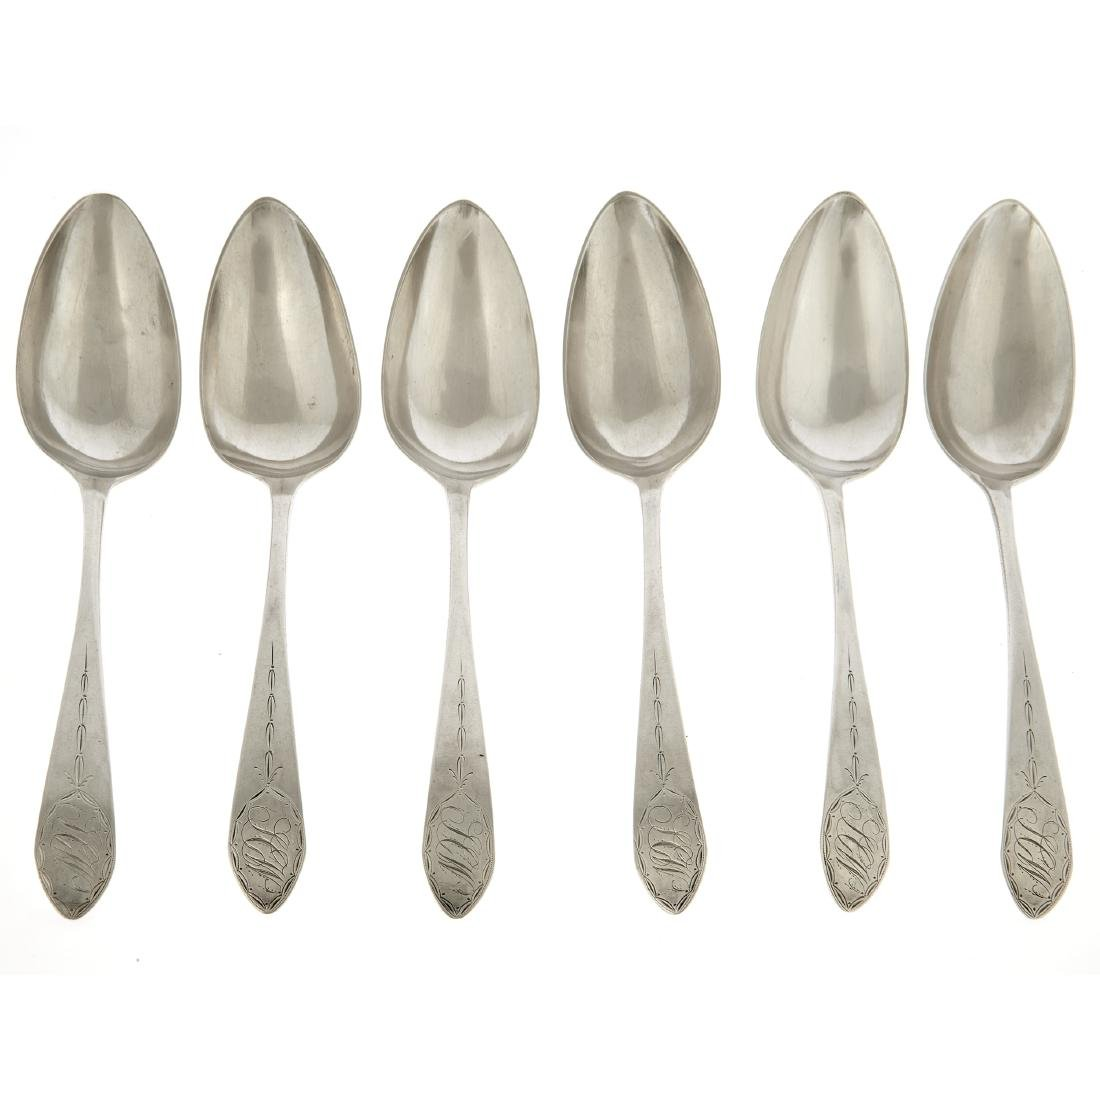 An American silver set of six tablespoons by John